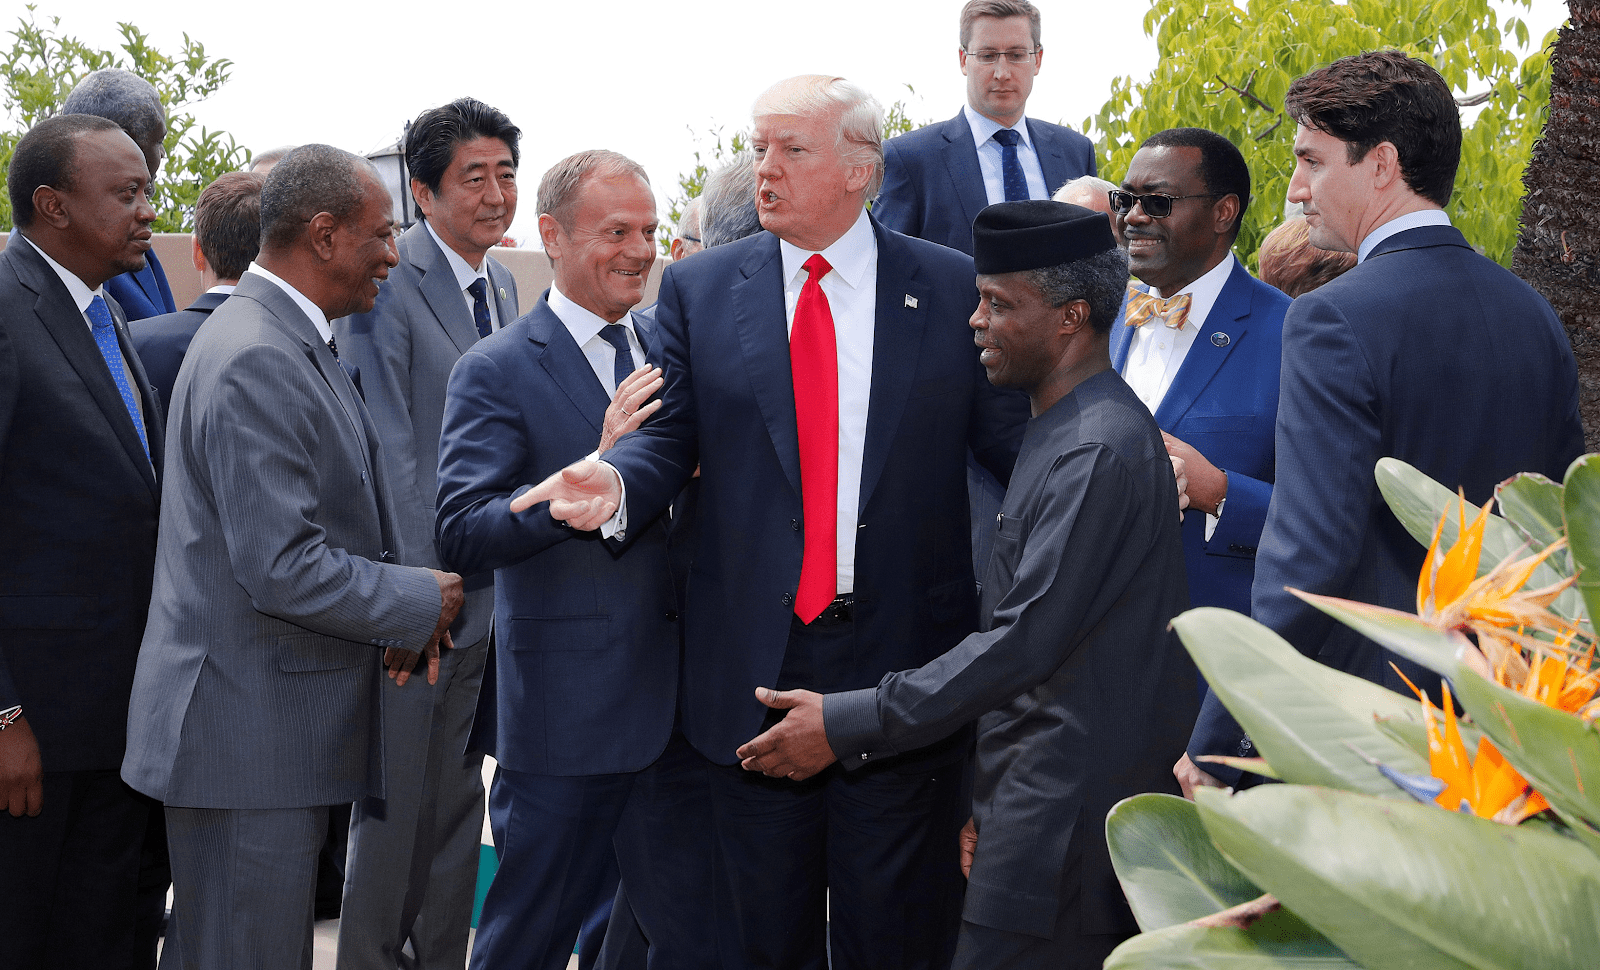 Trump administration investing in African e-commerce startups focused on Rural  Areas - THE TIMES OF AFRICA